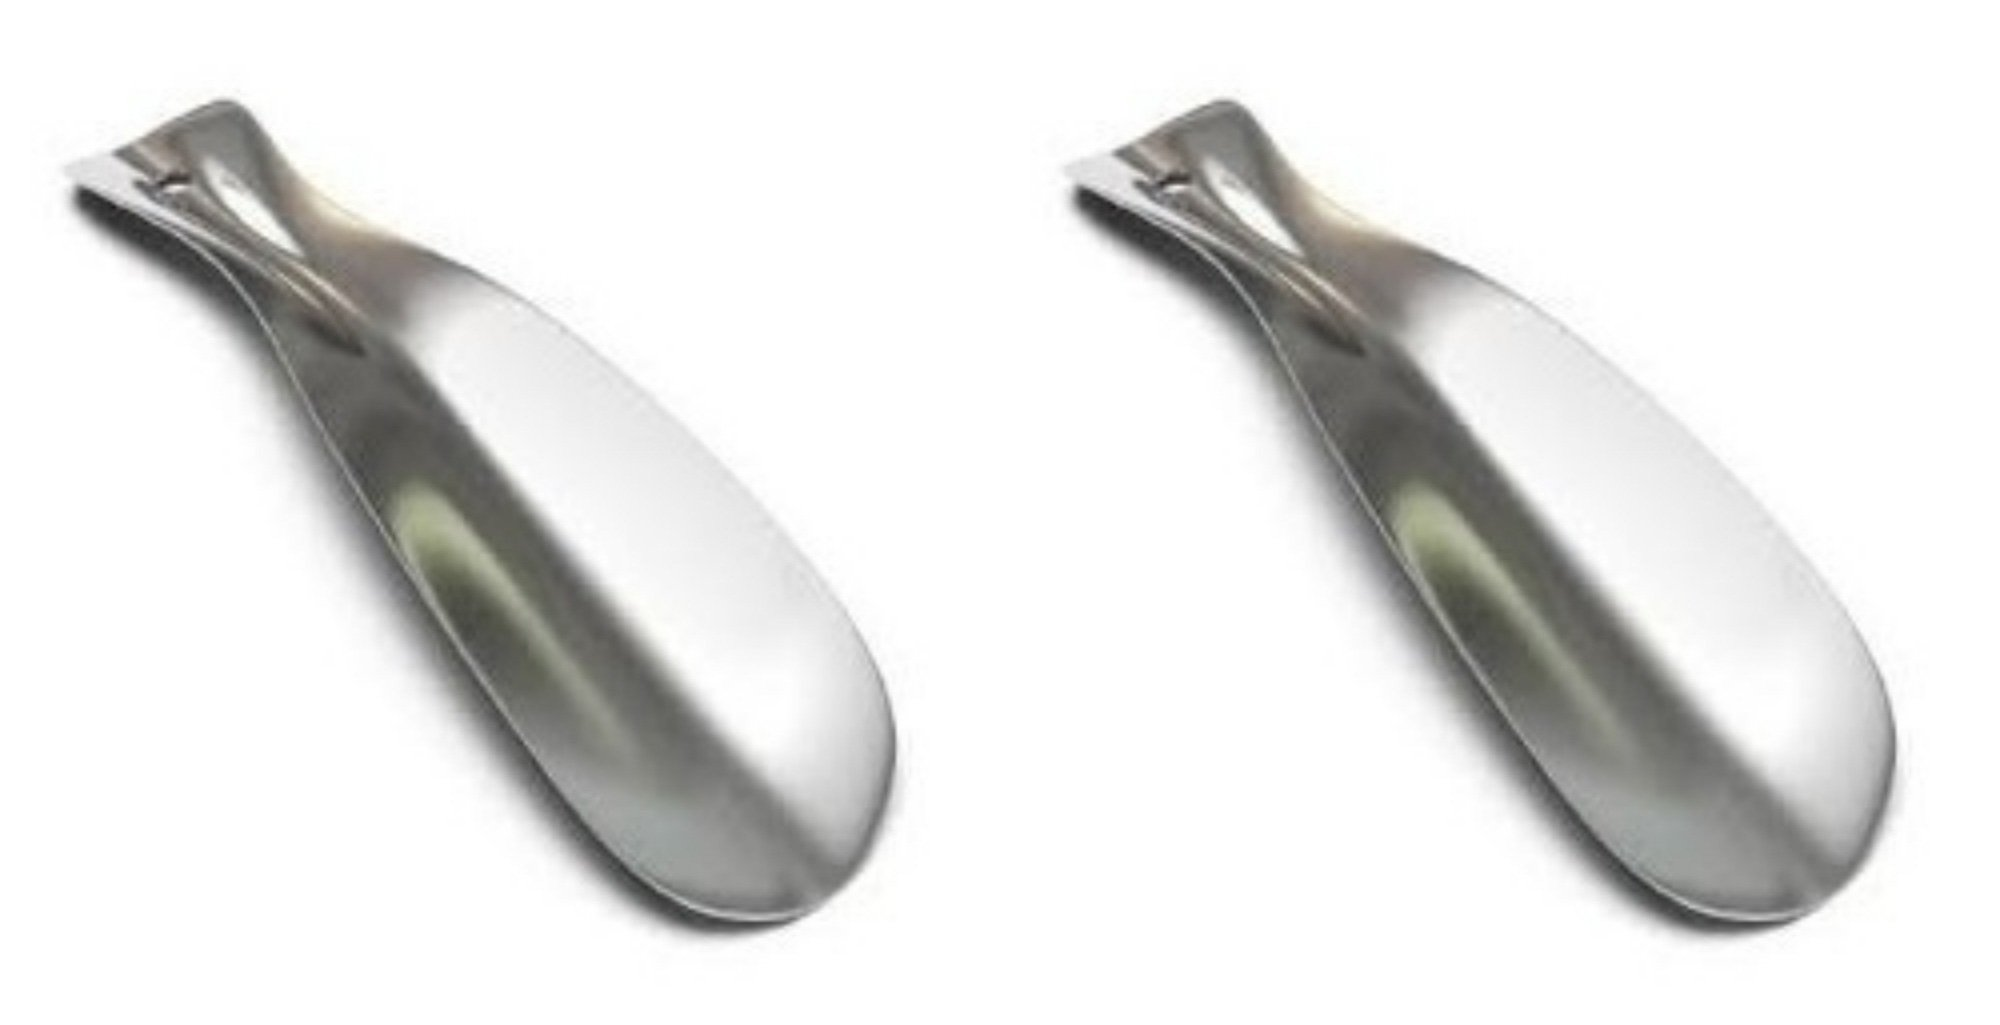 2 Pack Stainless Steel Shoe Horns Professional Grade Premium Polished Chrome Silver